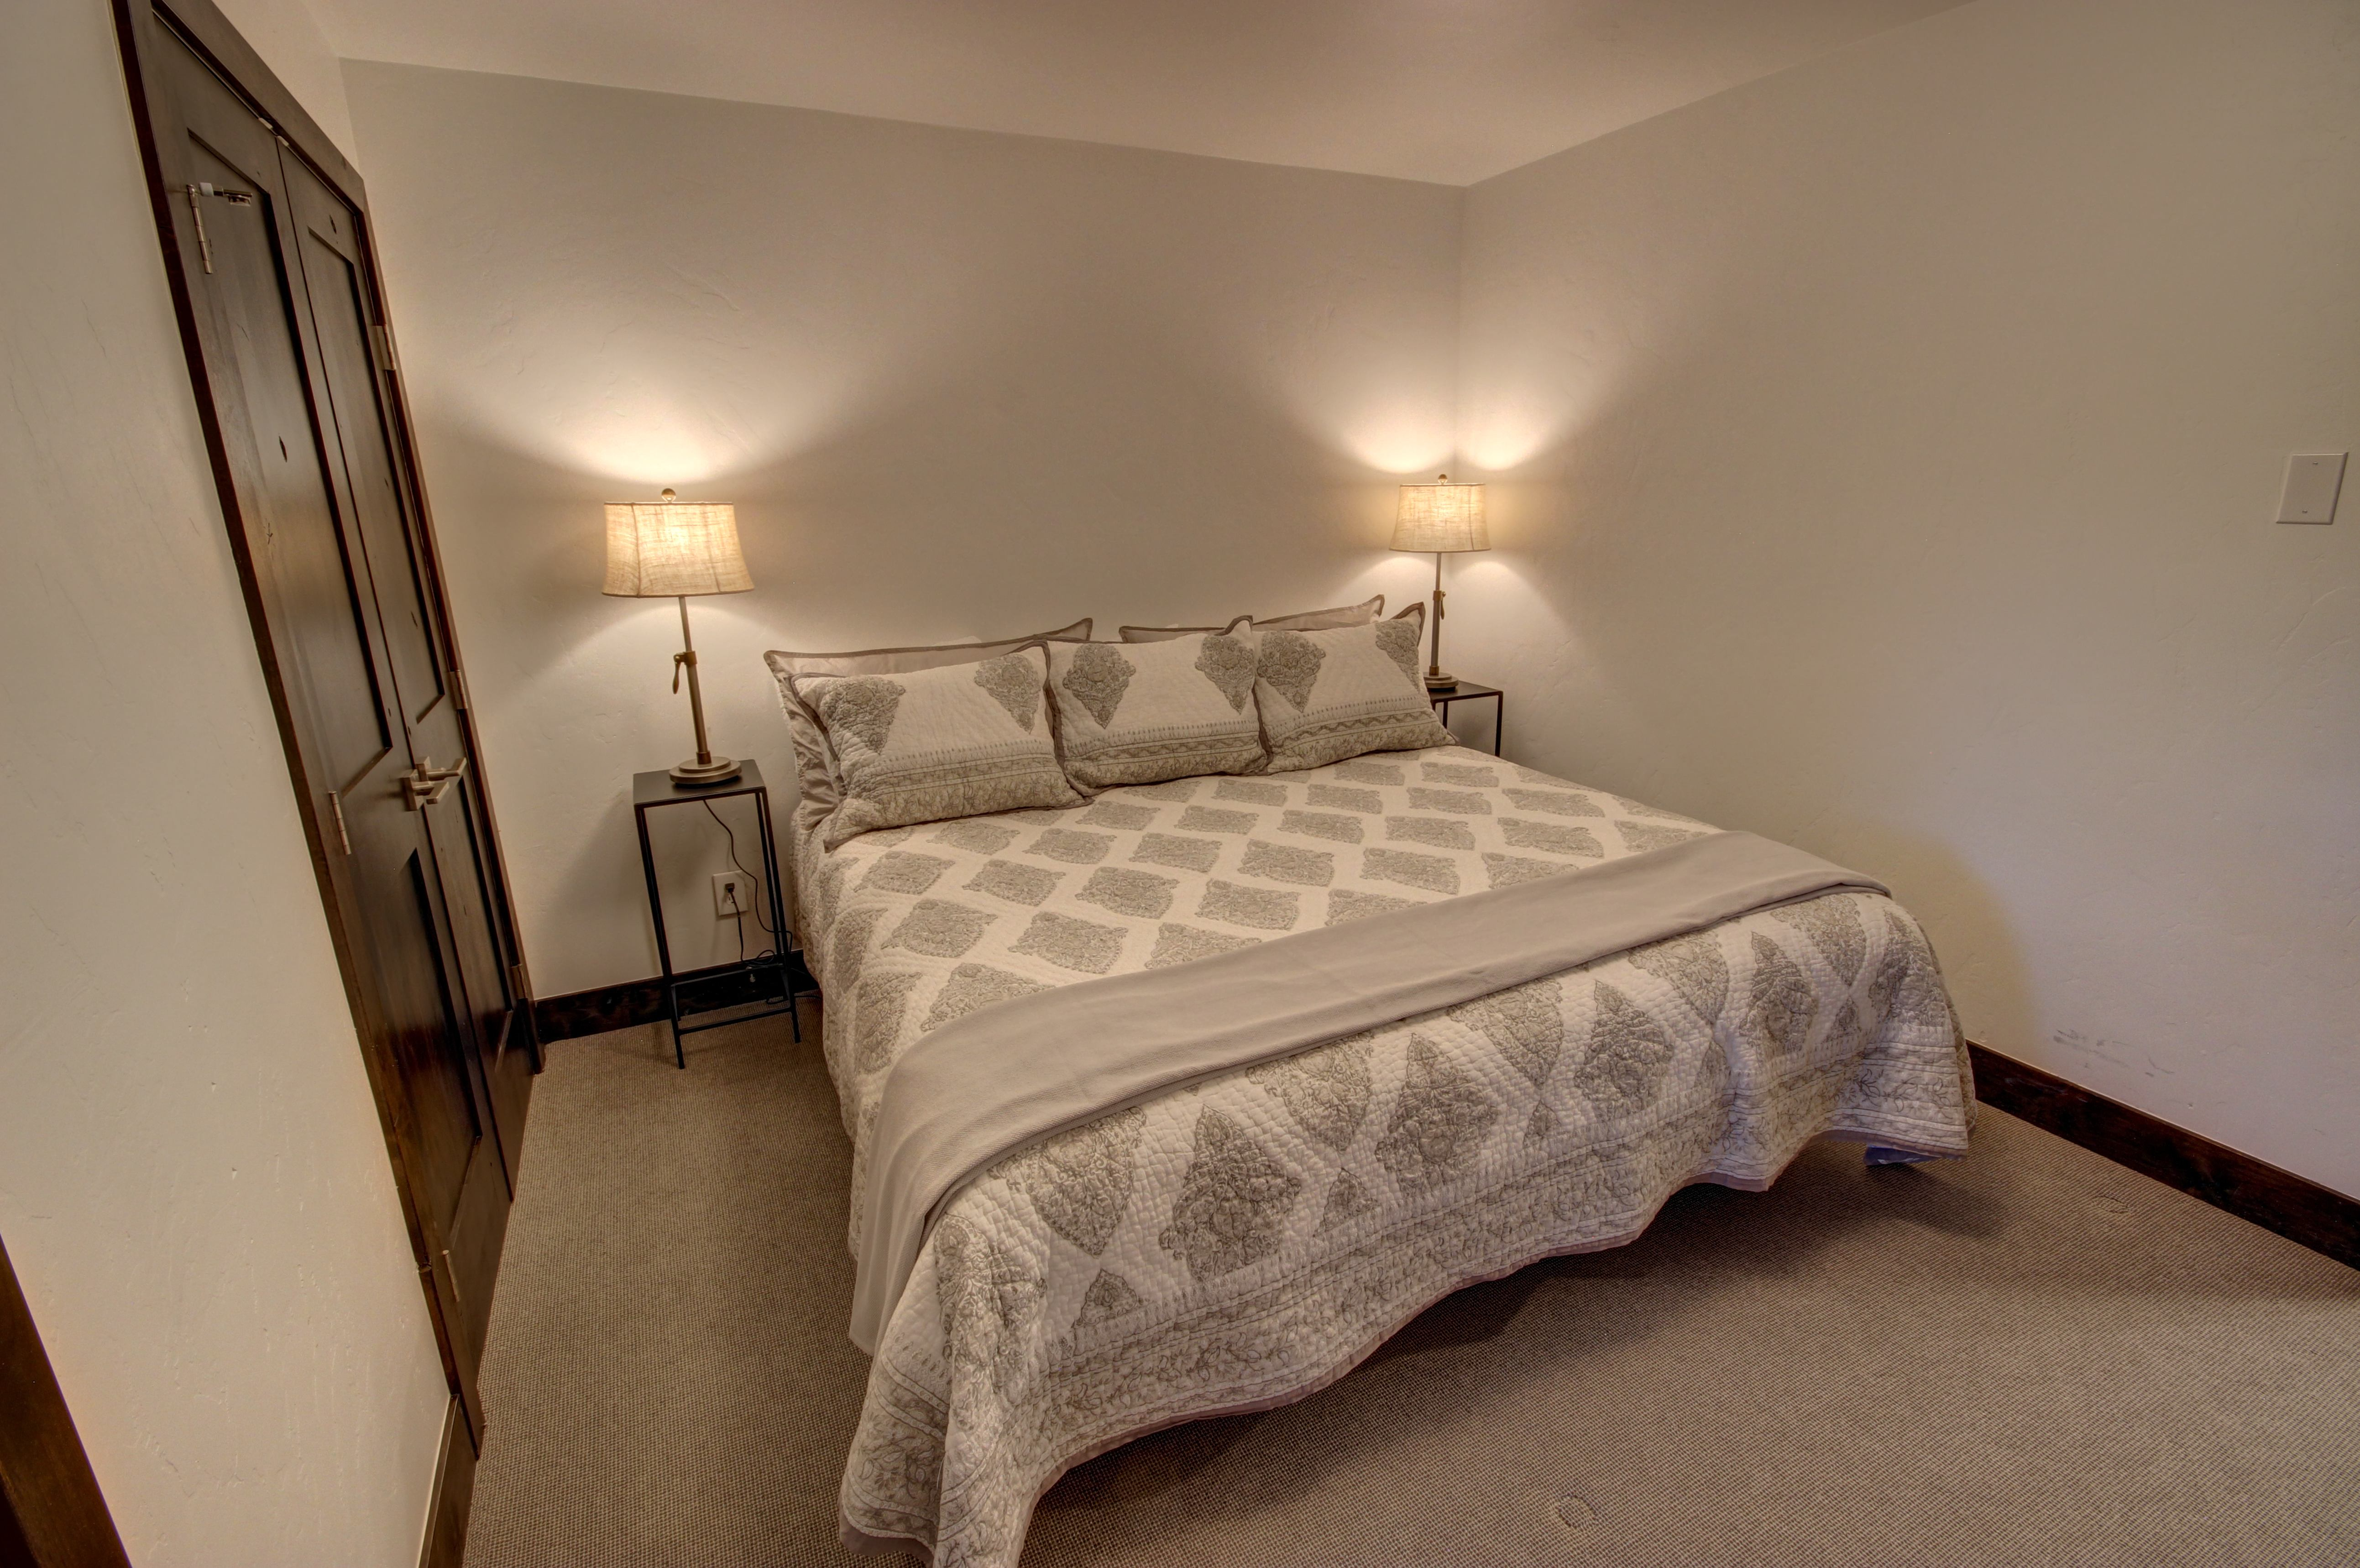 Bedroom with comfortable and relaxing beds